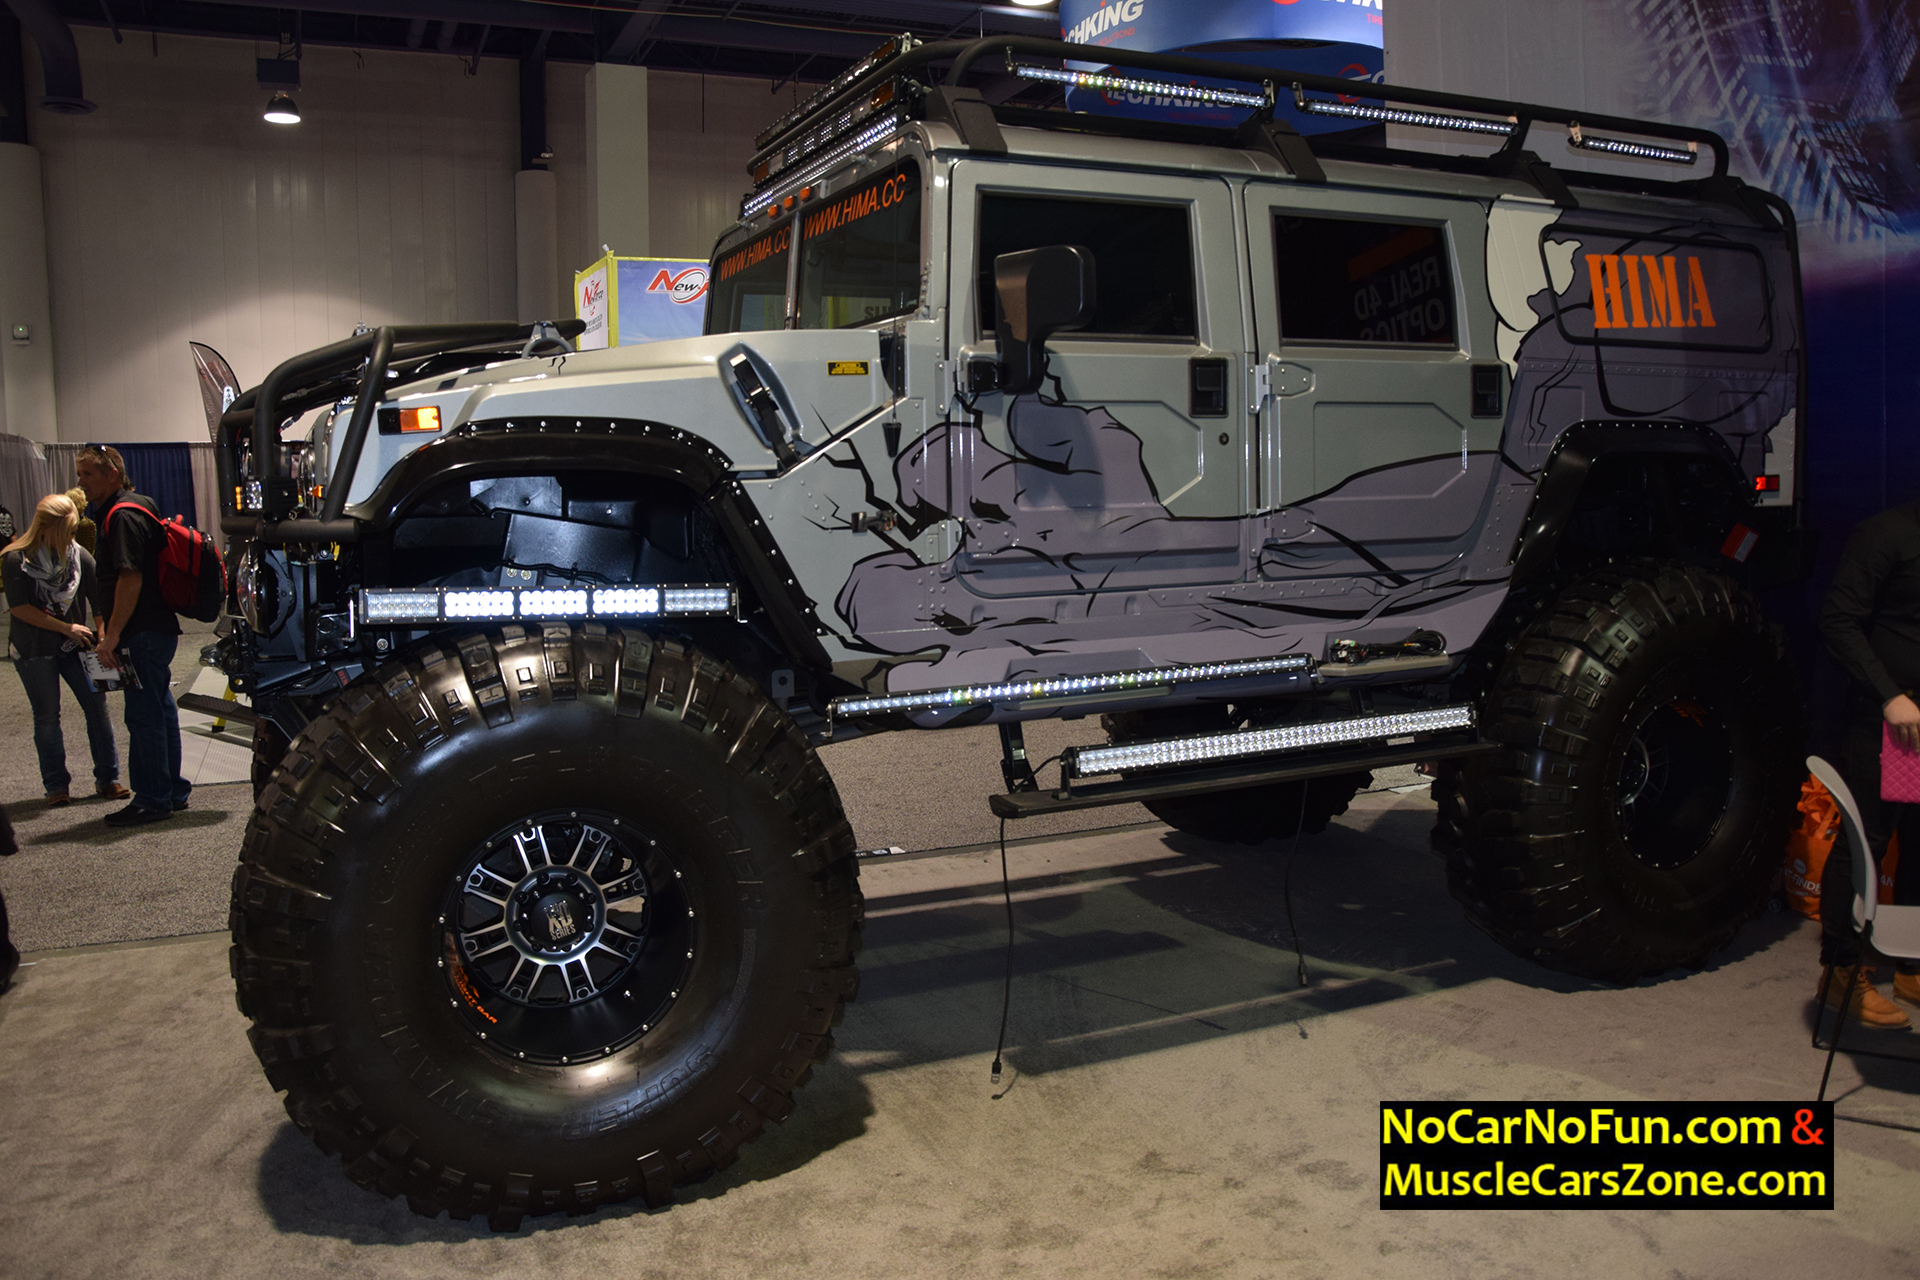 Extremely Lifted Hummer H2 By Hima 2015 Sema Motor Show 5 No